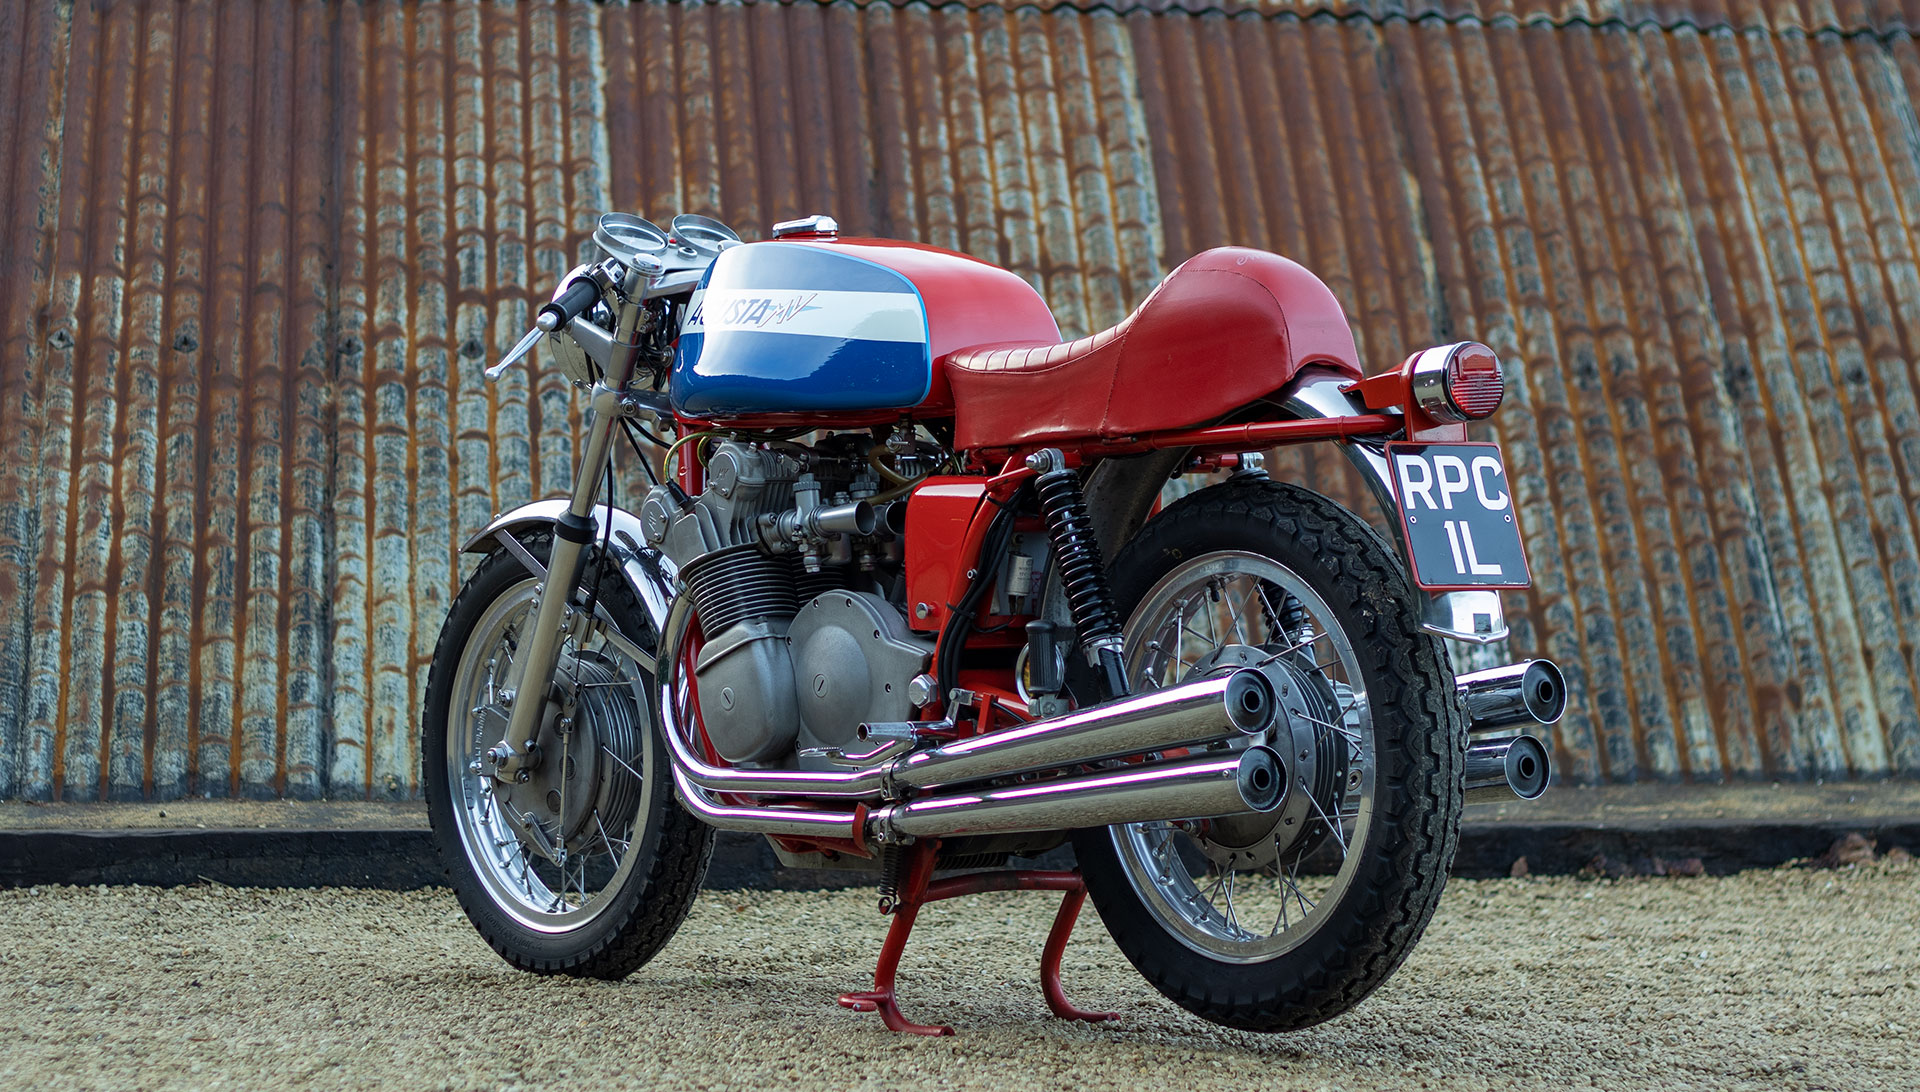 1973 MV Agusta 750 S for sale at The Classic Motor Hub